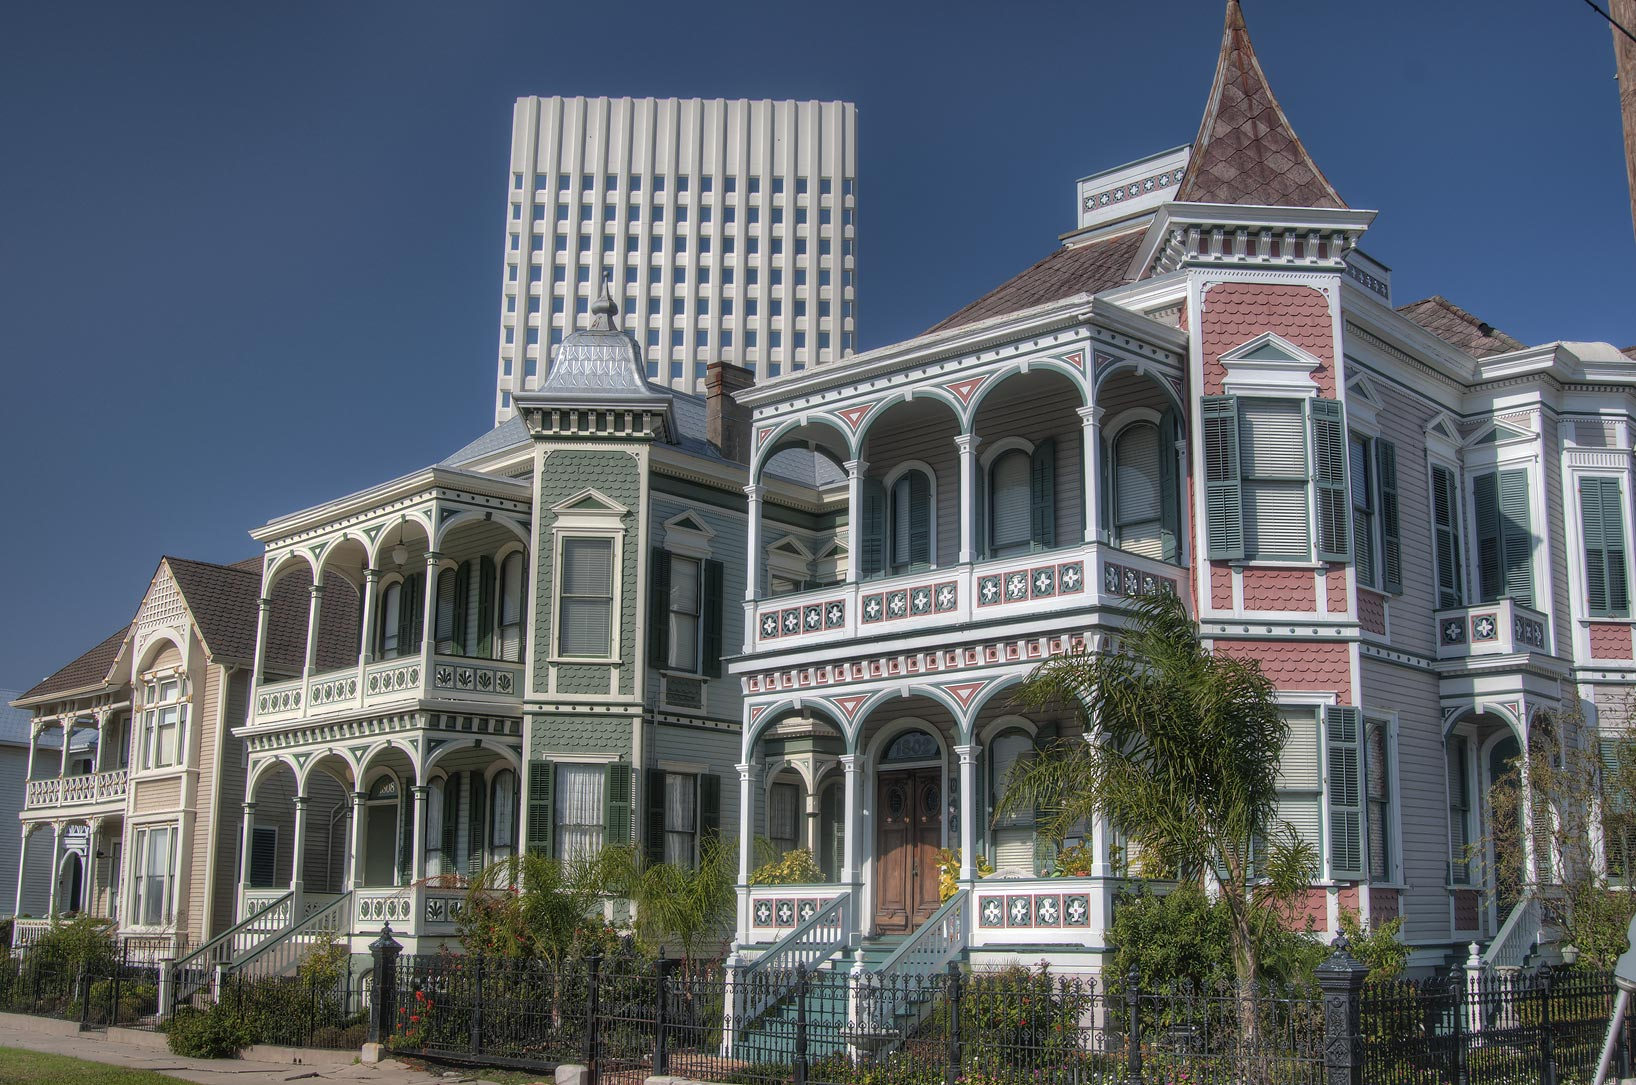 Jake Davis house on Postoffice St. in East End...a corner of 18th St.. Galveston, Texas